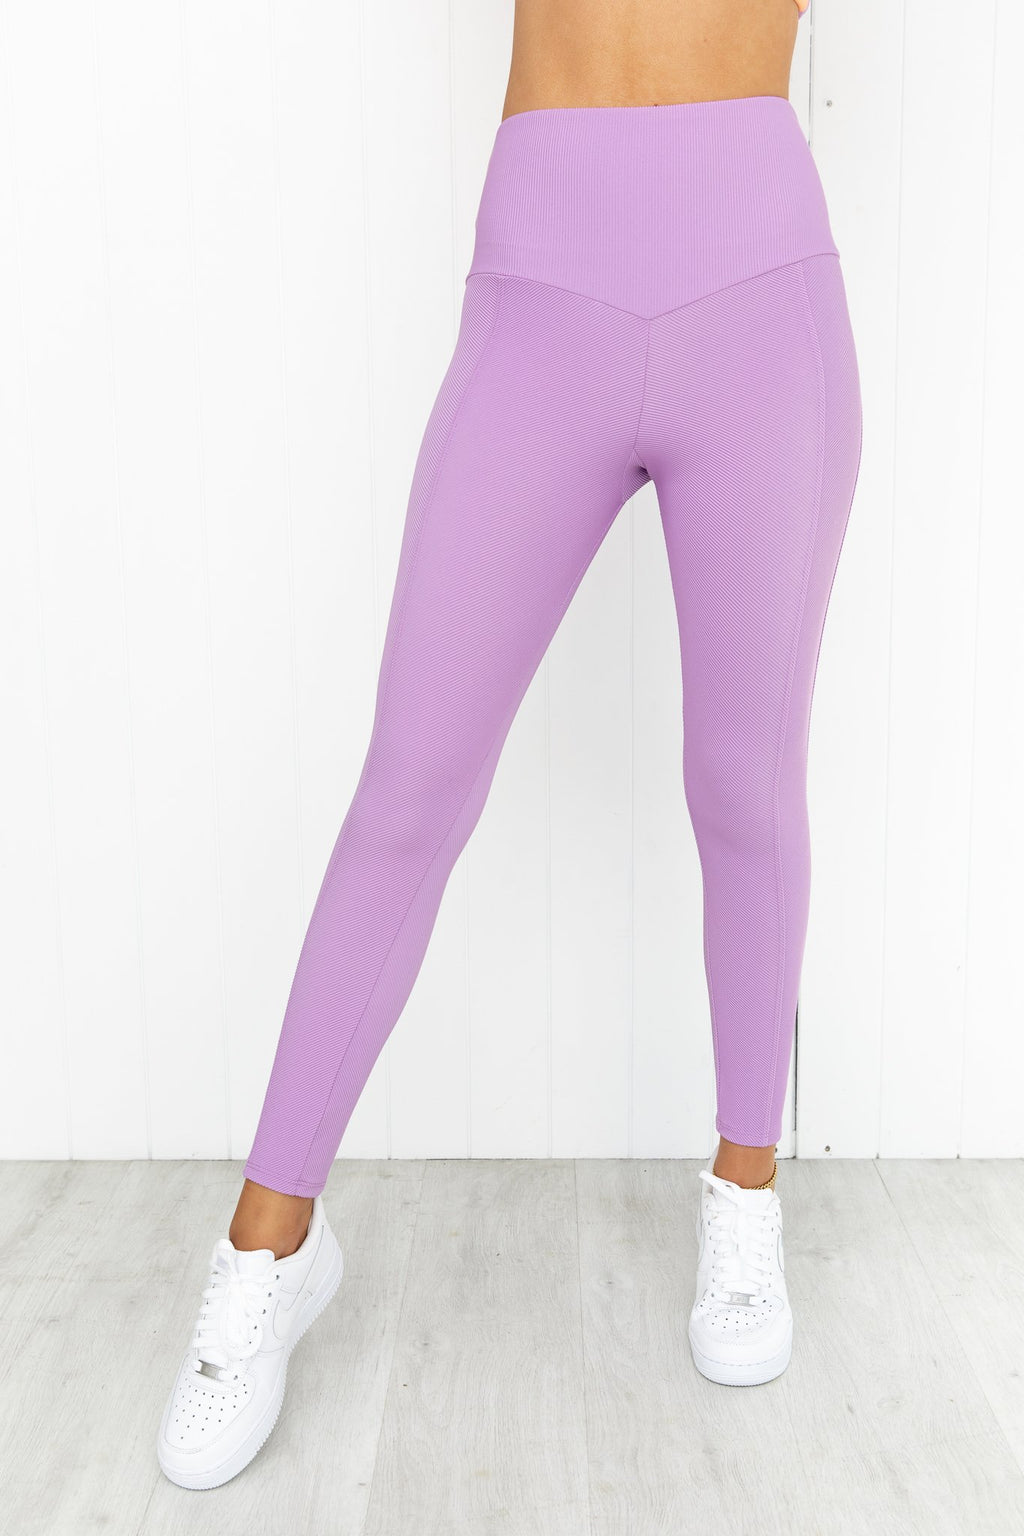 Sweetheart Rib Midi Leggings - Spring Fairy